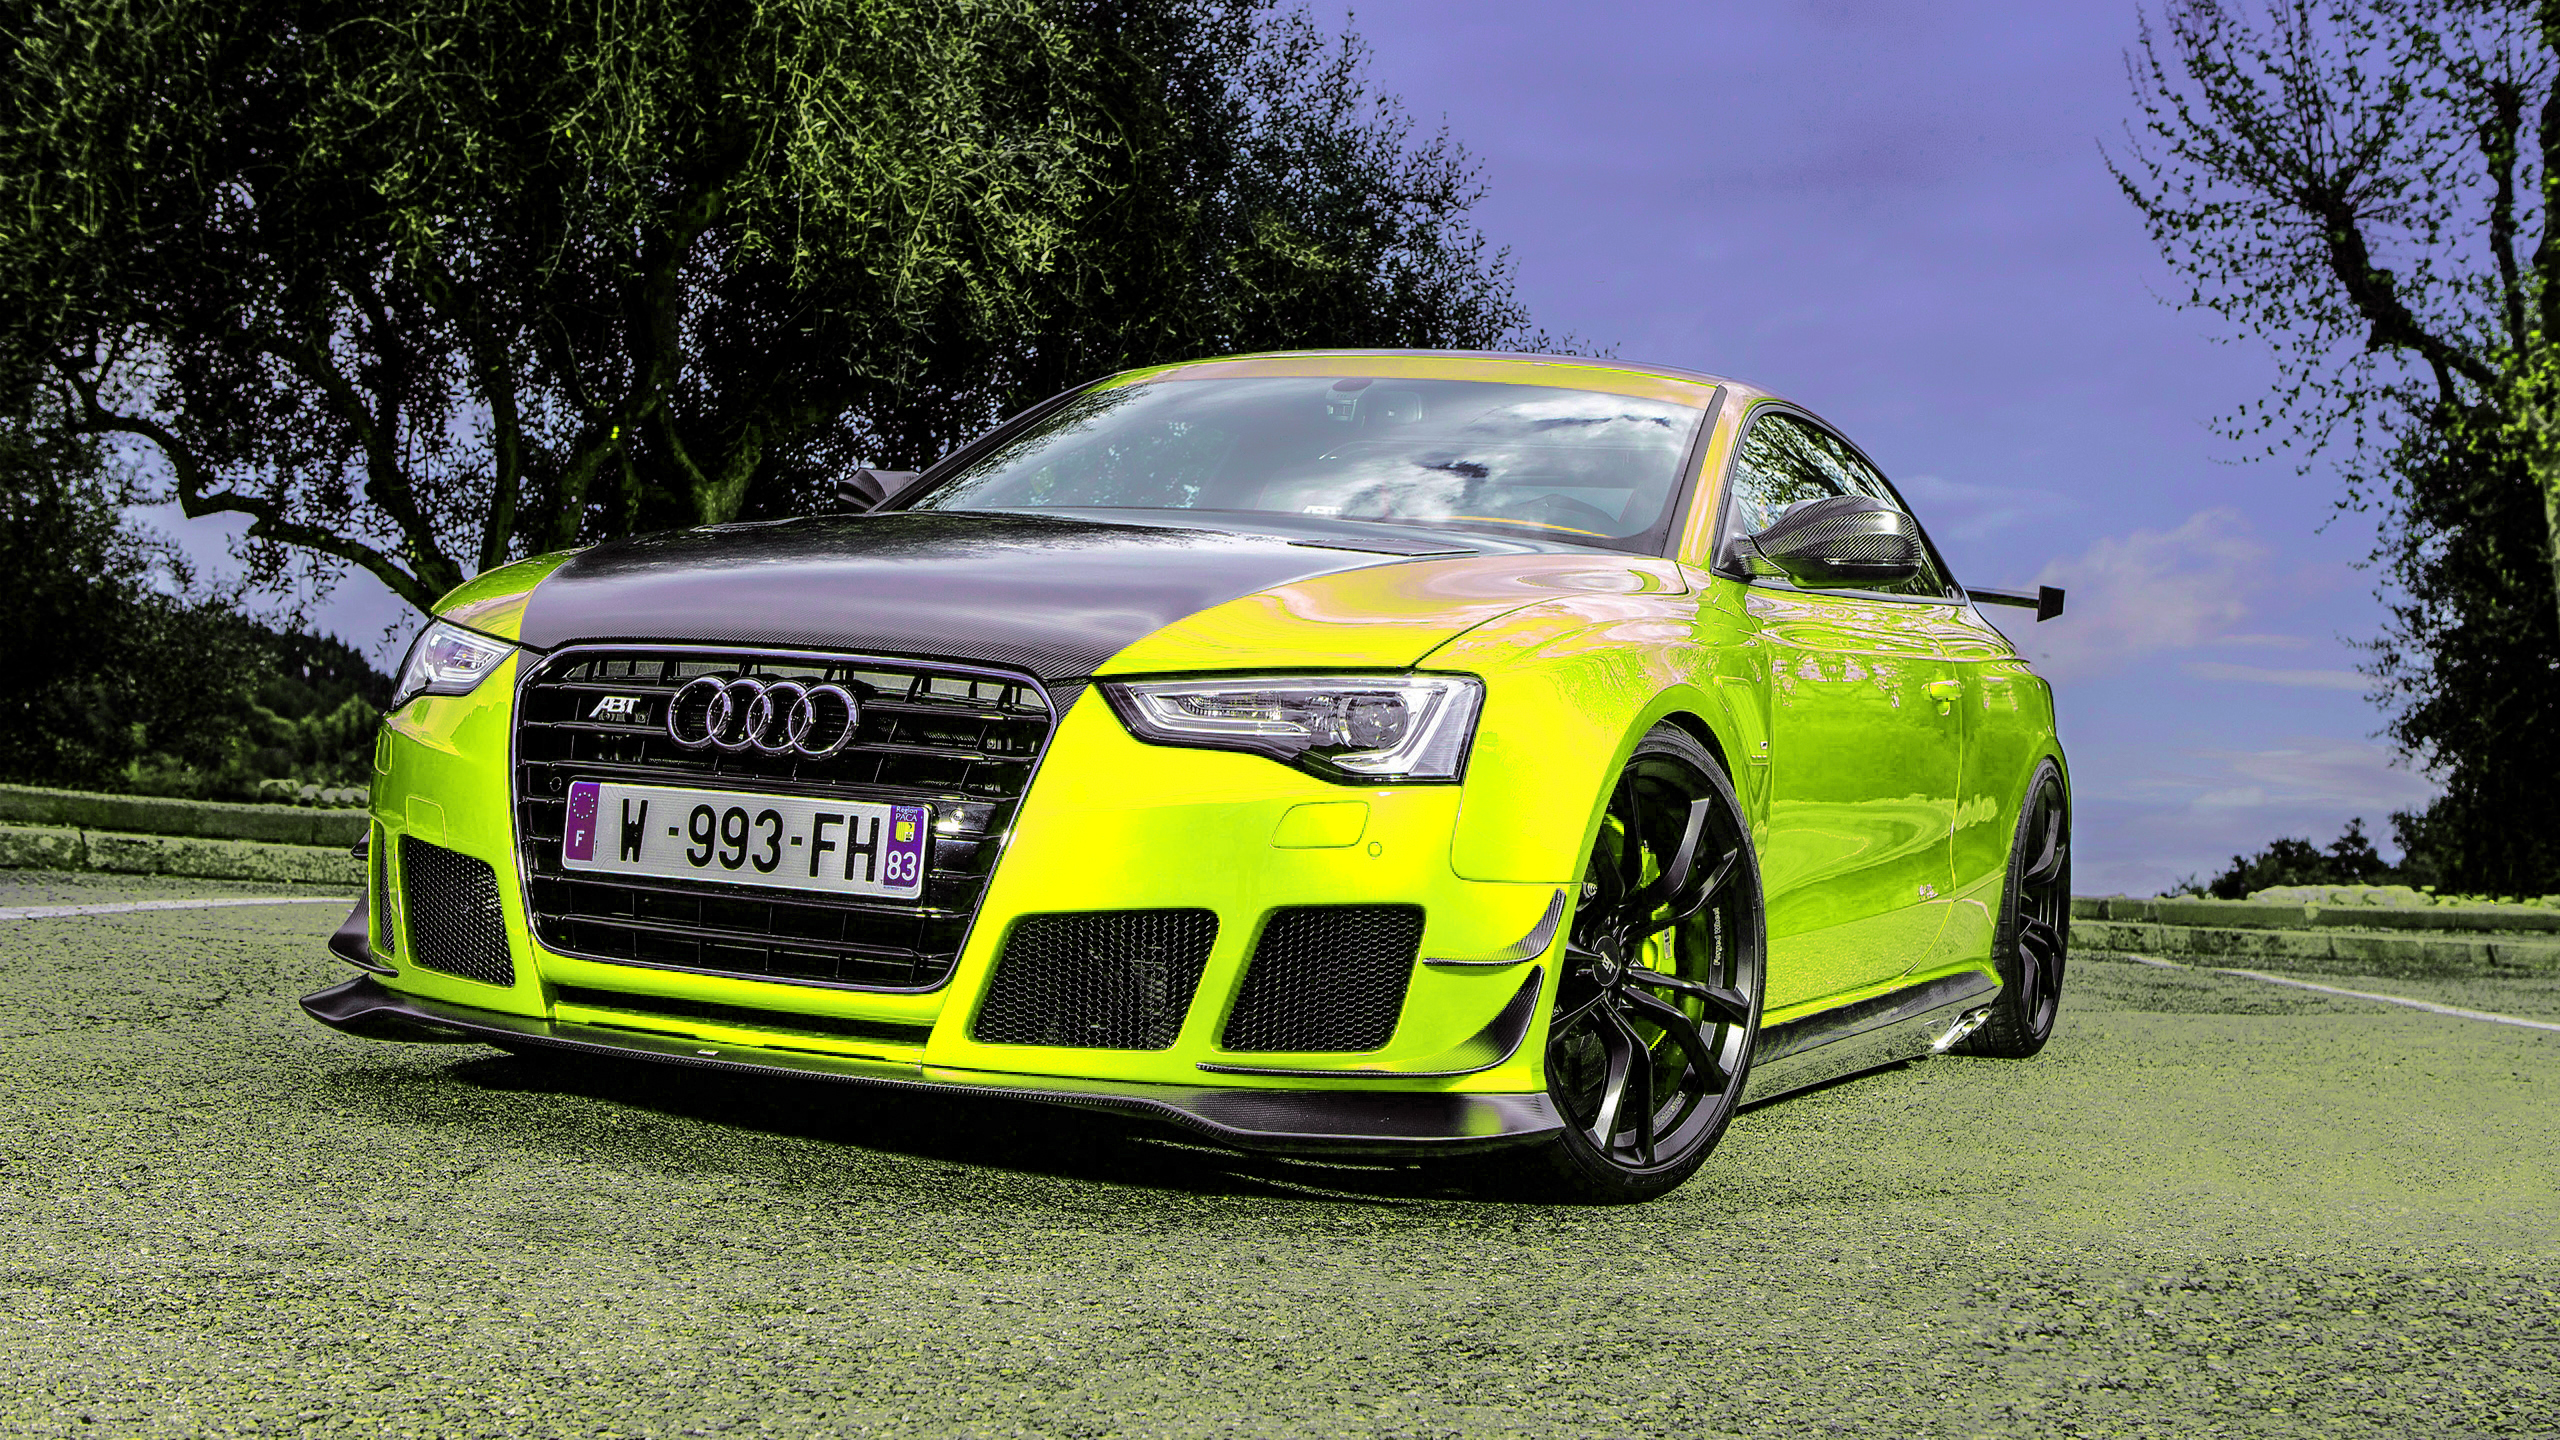 AUDI RS5-R Coupe ABT Sportsline Fluorescent Yellow Neon - - AUDI RS5-R Coupe ABT Sportsline Fluorescent Yellow